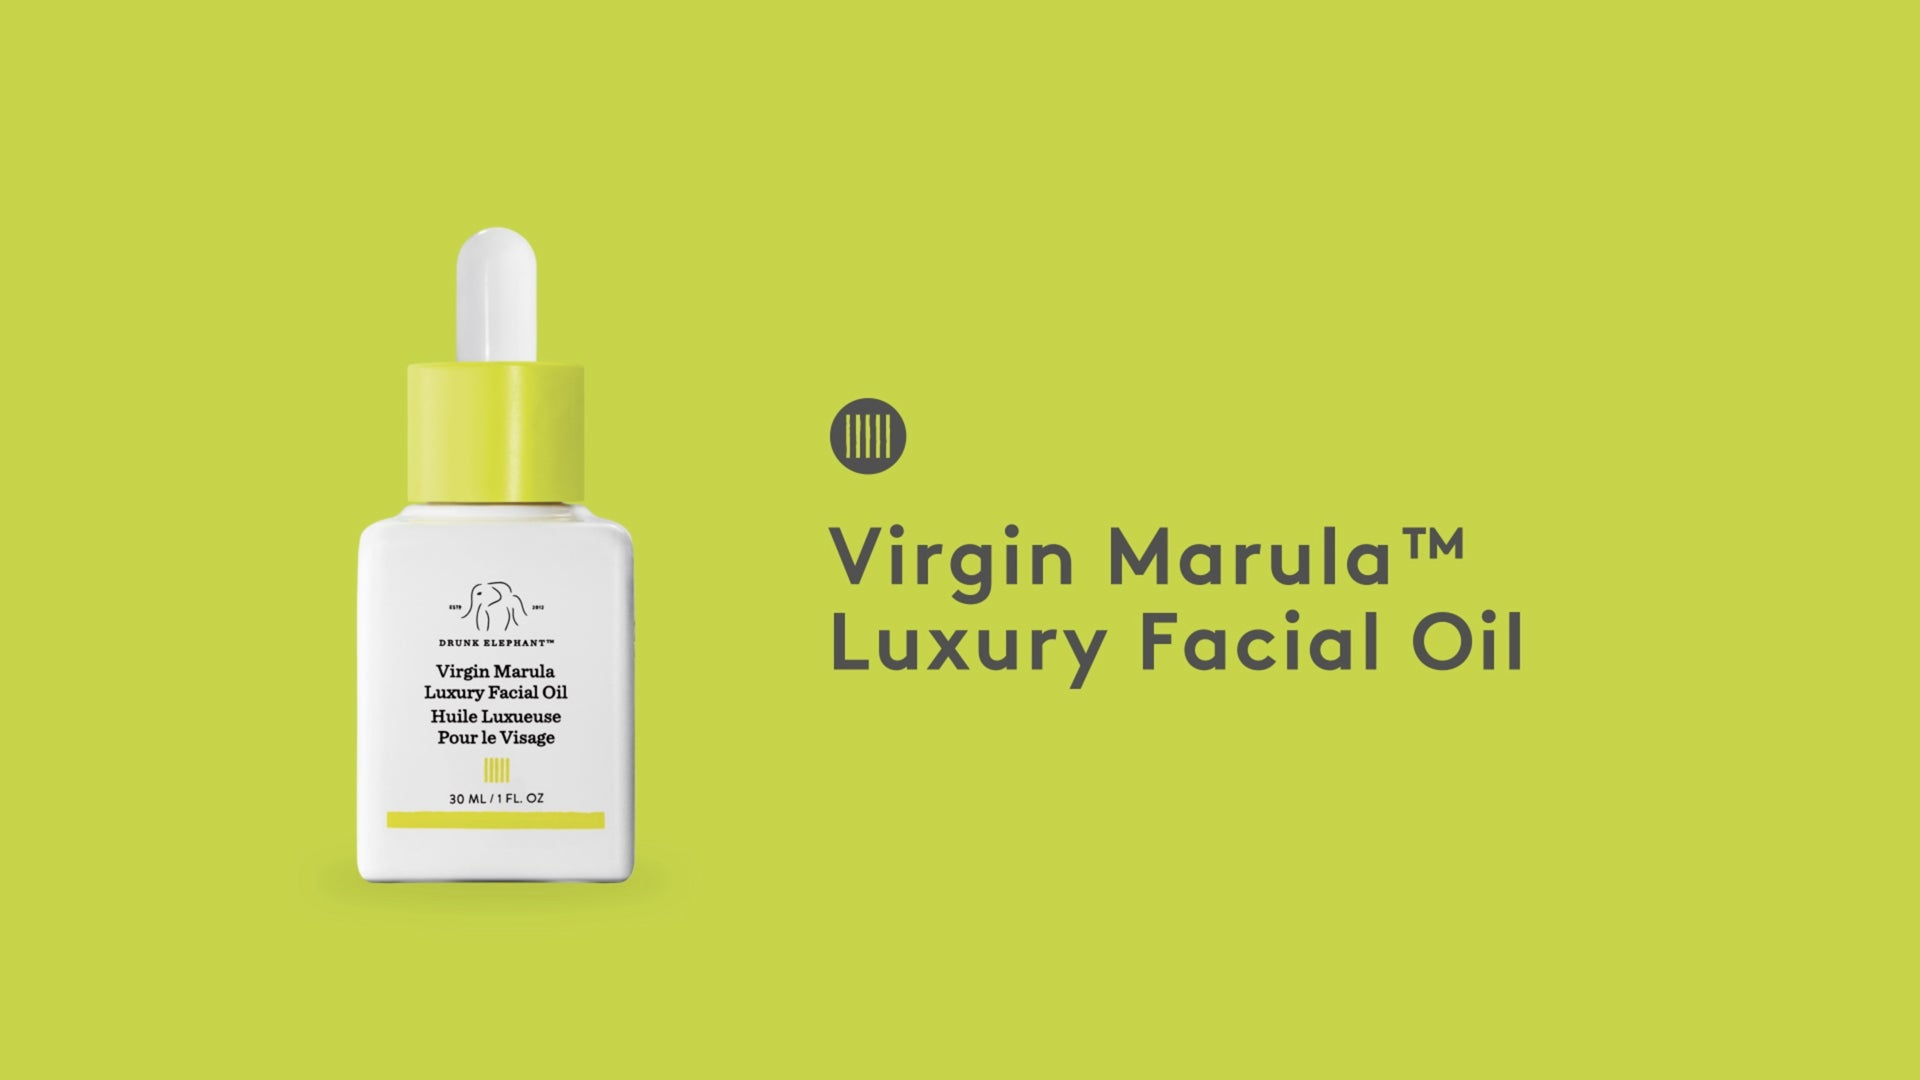 video detailing the benefits of Virgin Marula Luxury Facial Oil